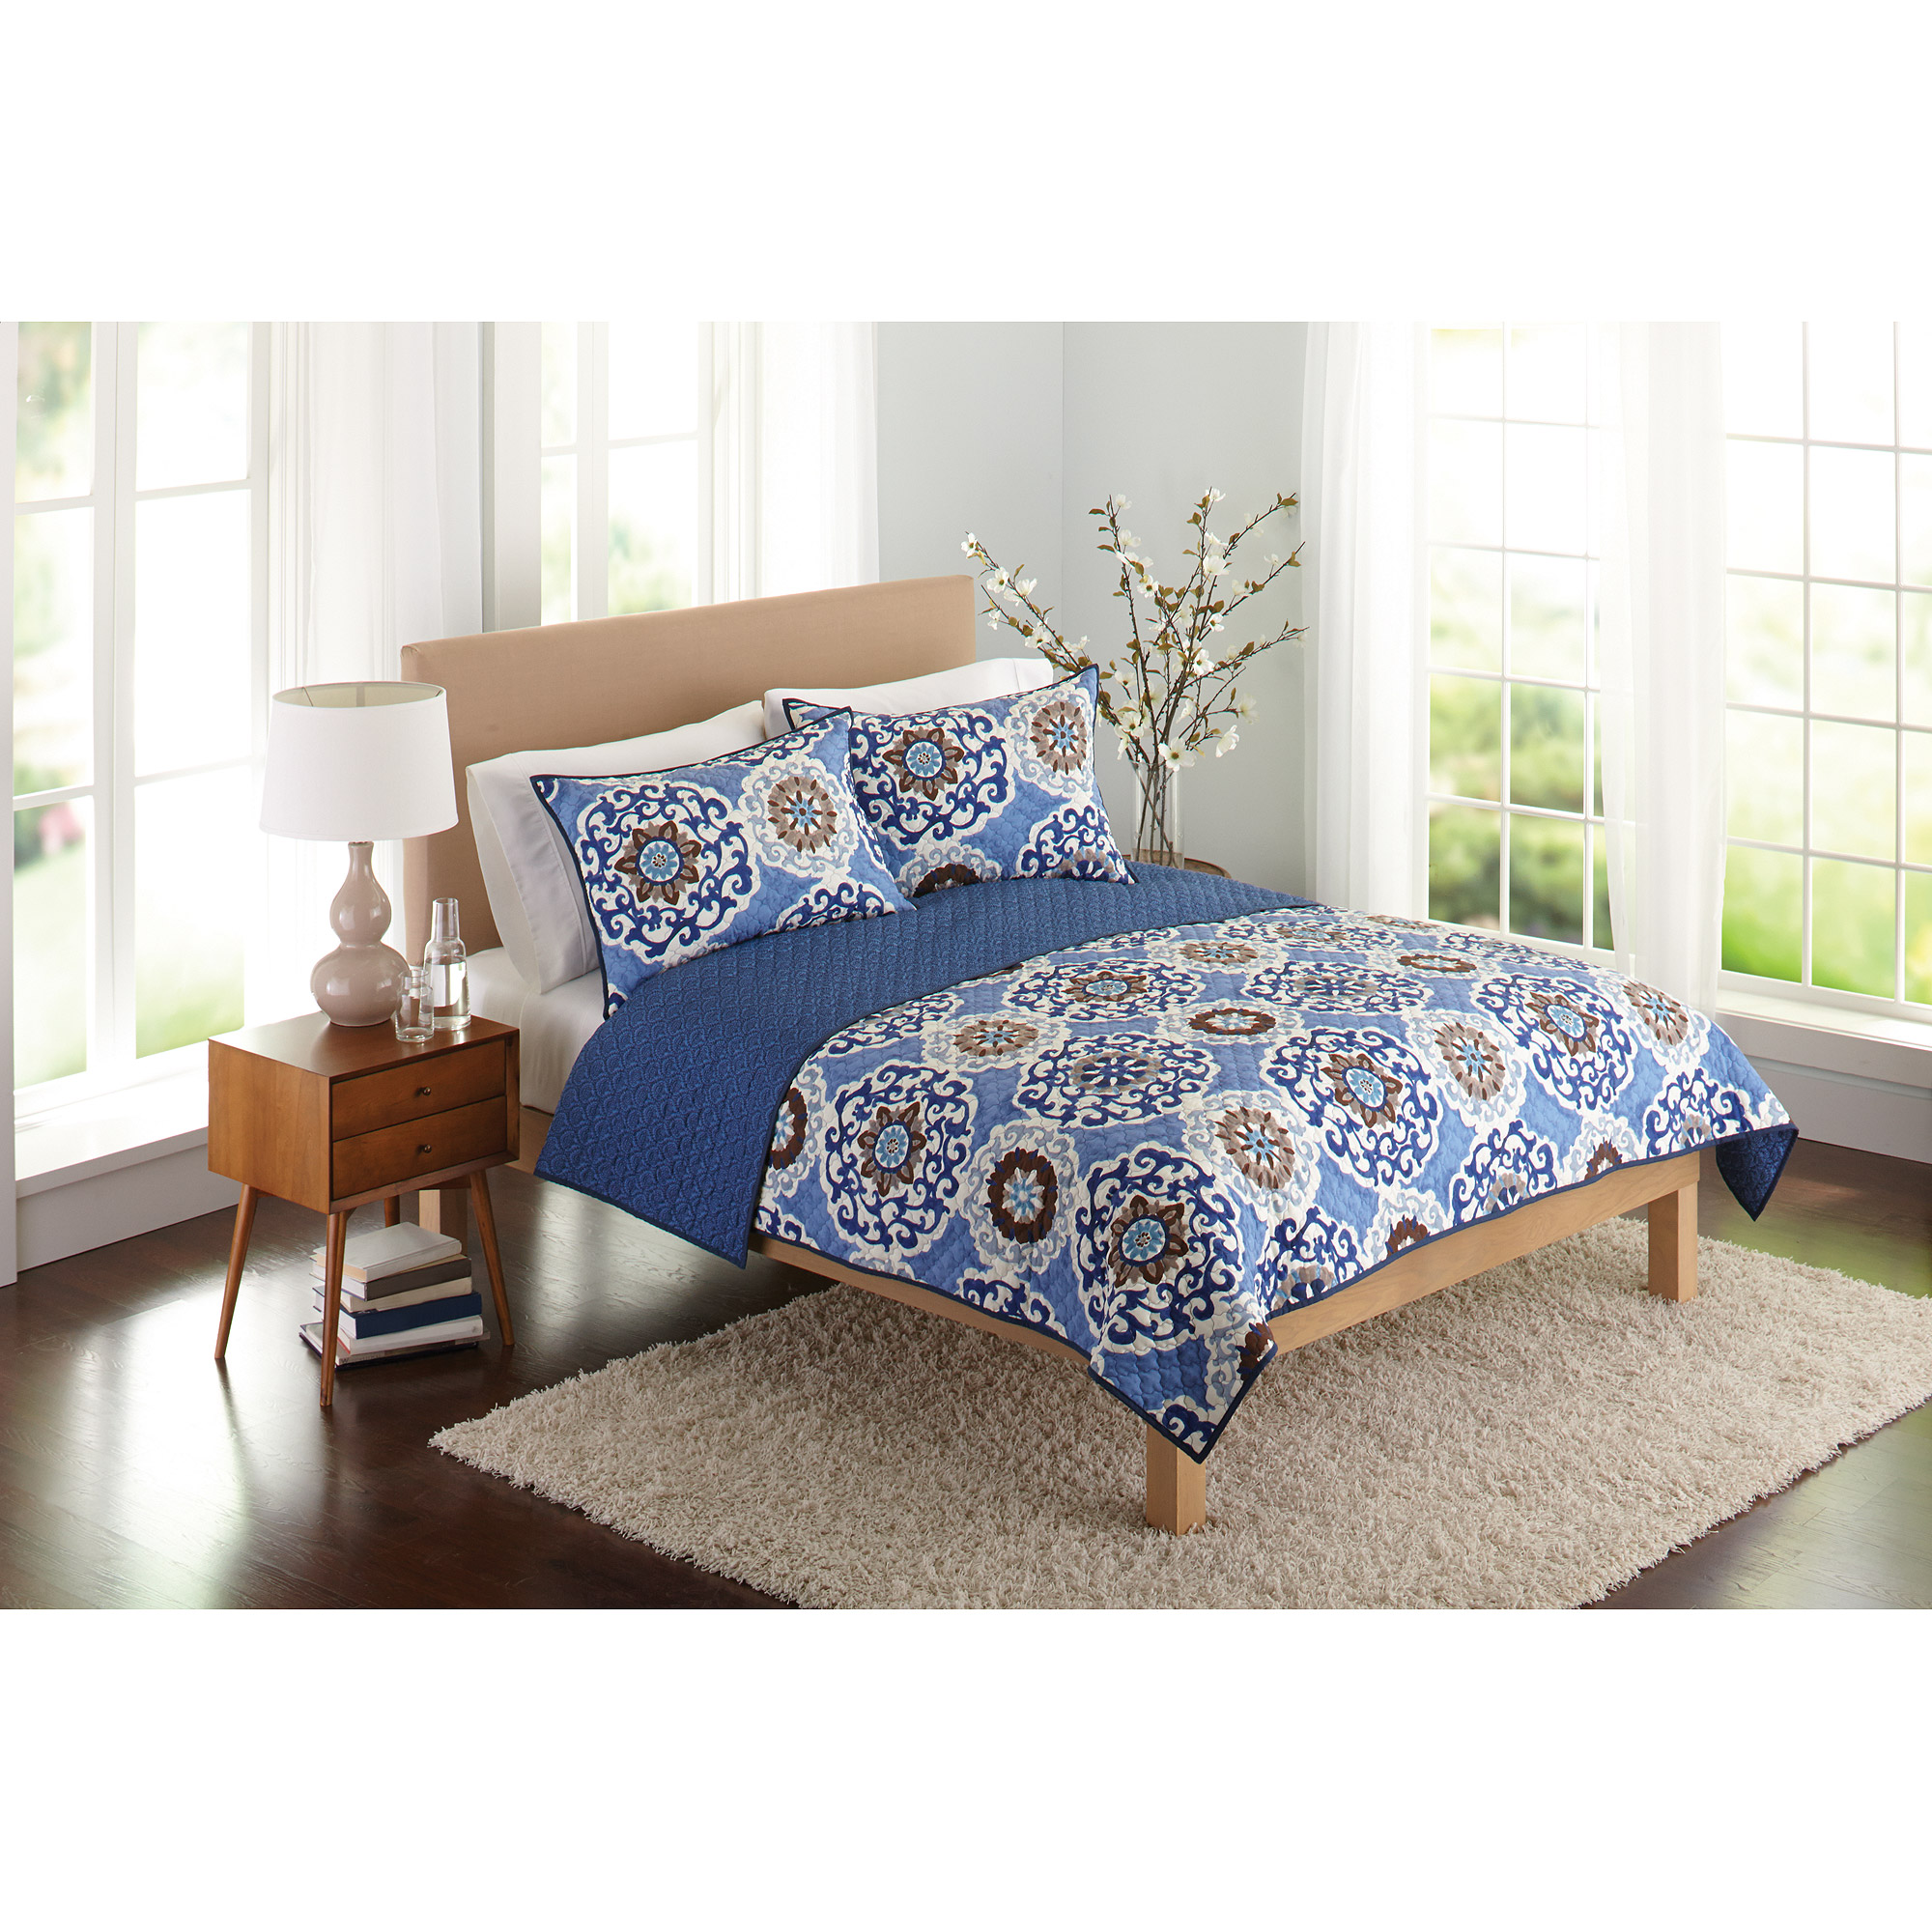 Better Homes and Gardens Suzani Bedding Quilt Blue Walmartcom